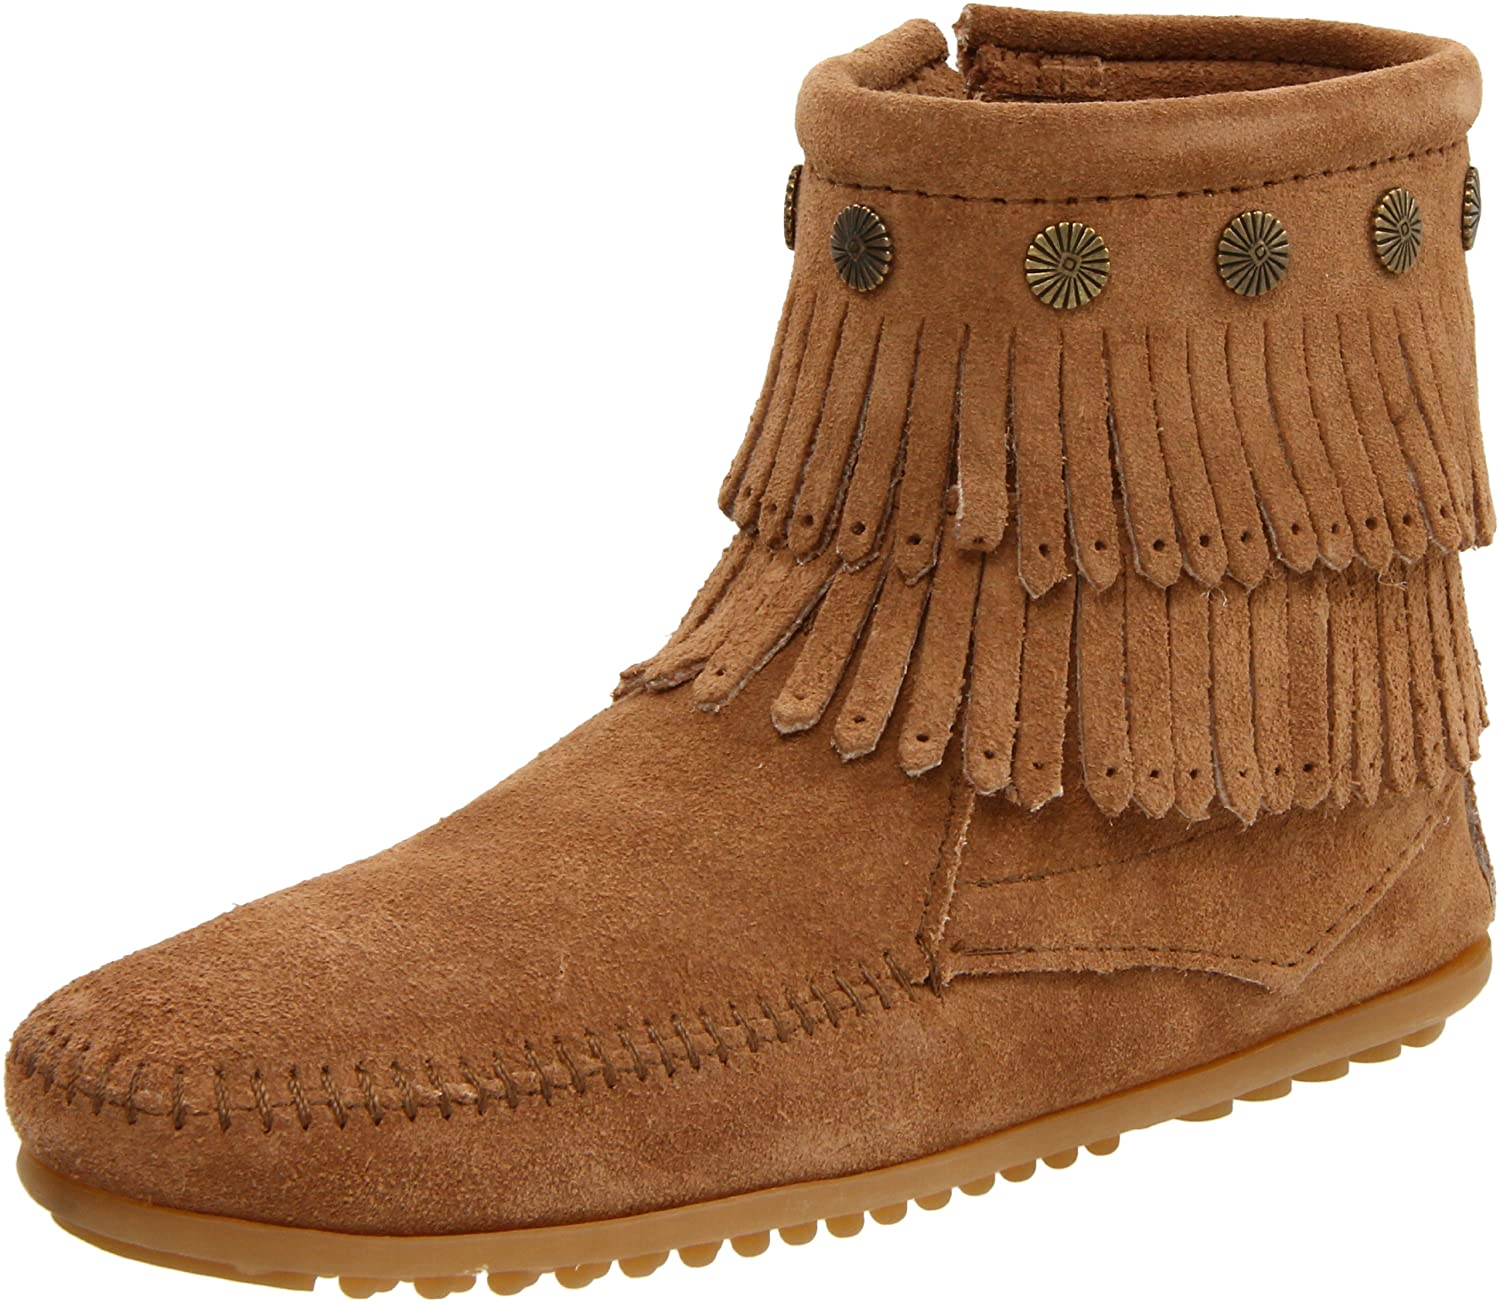 Minnetonka Women's Double-Fringe Side-Zip Boot B004UEVCUY 6.5 B(M) US|Taupe